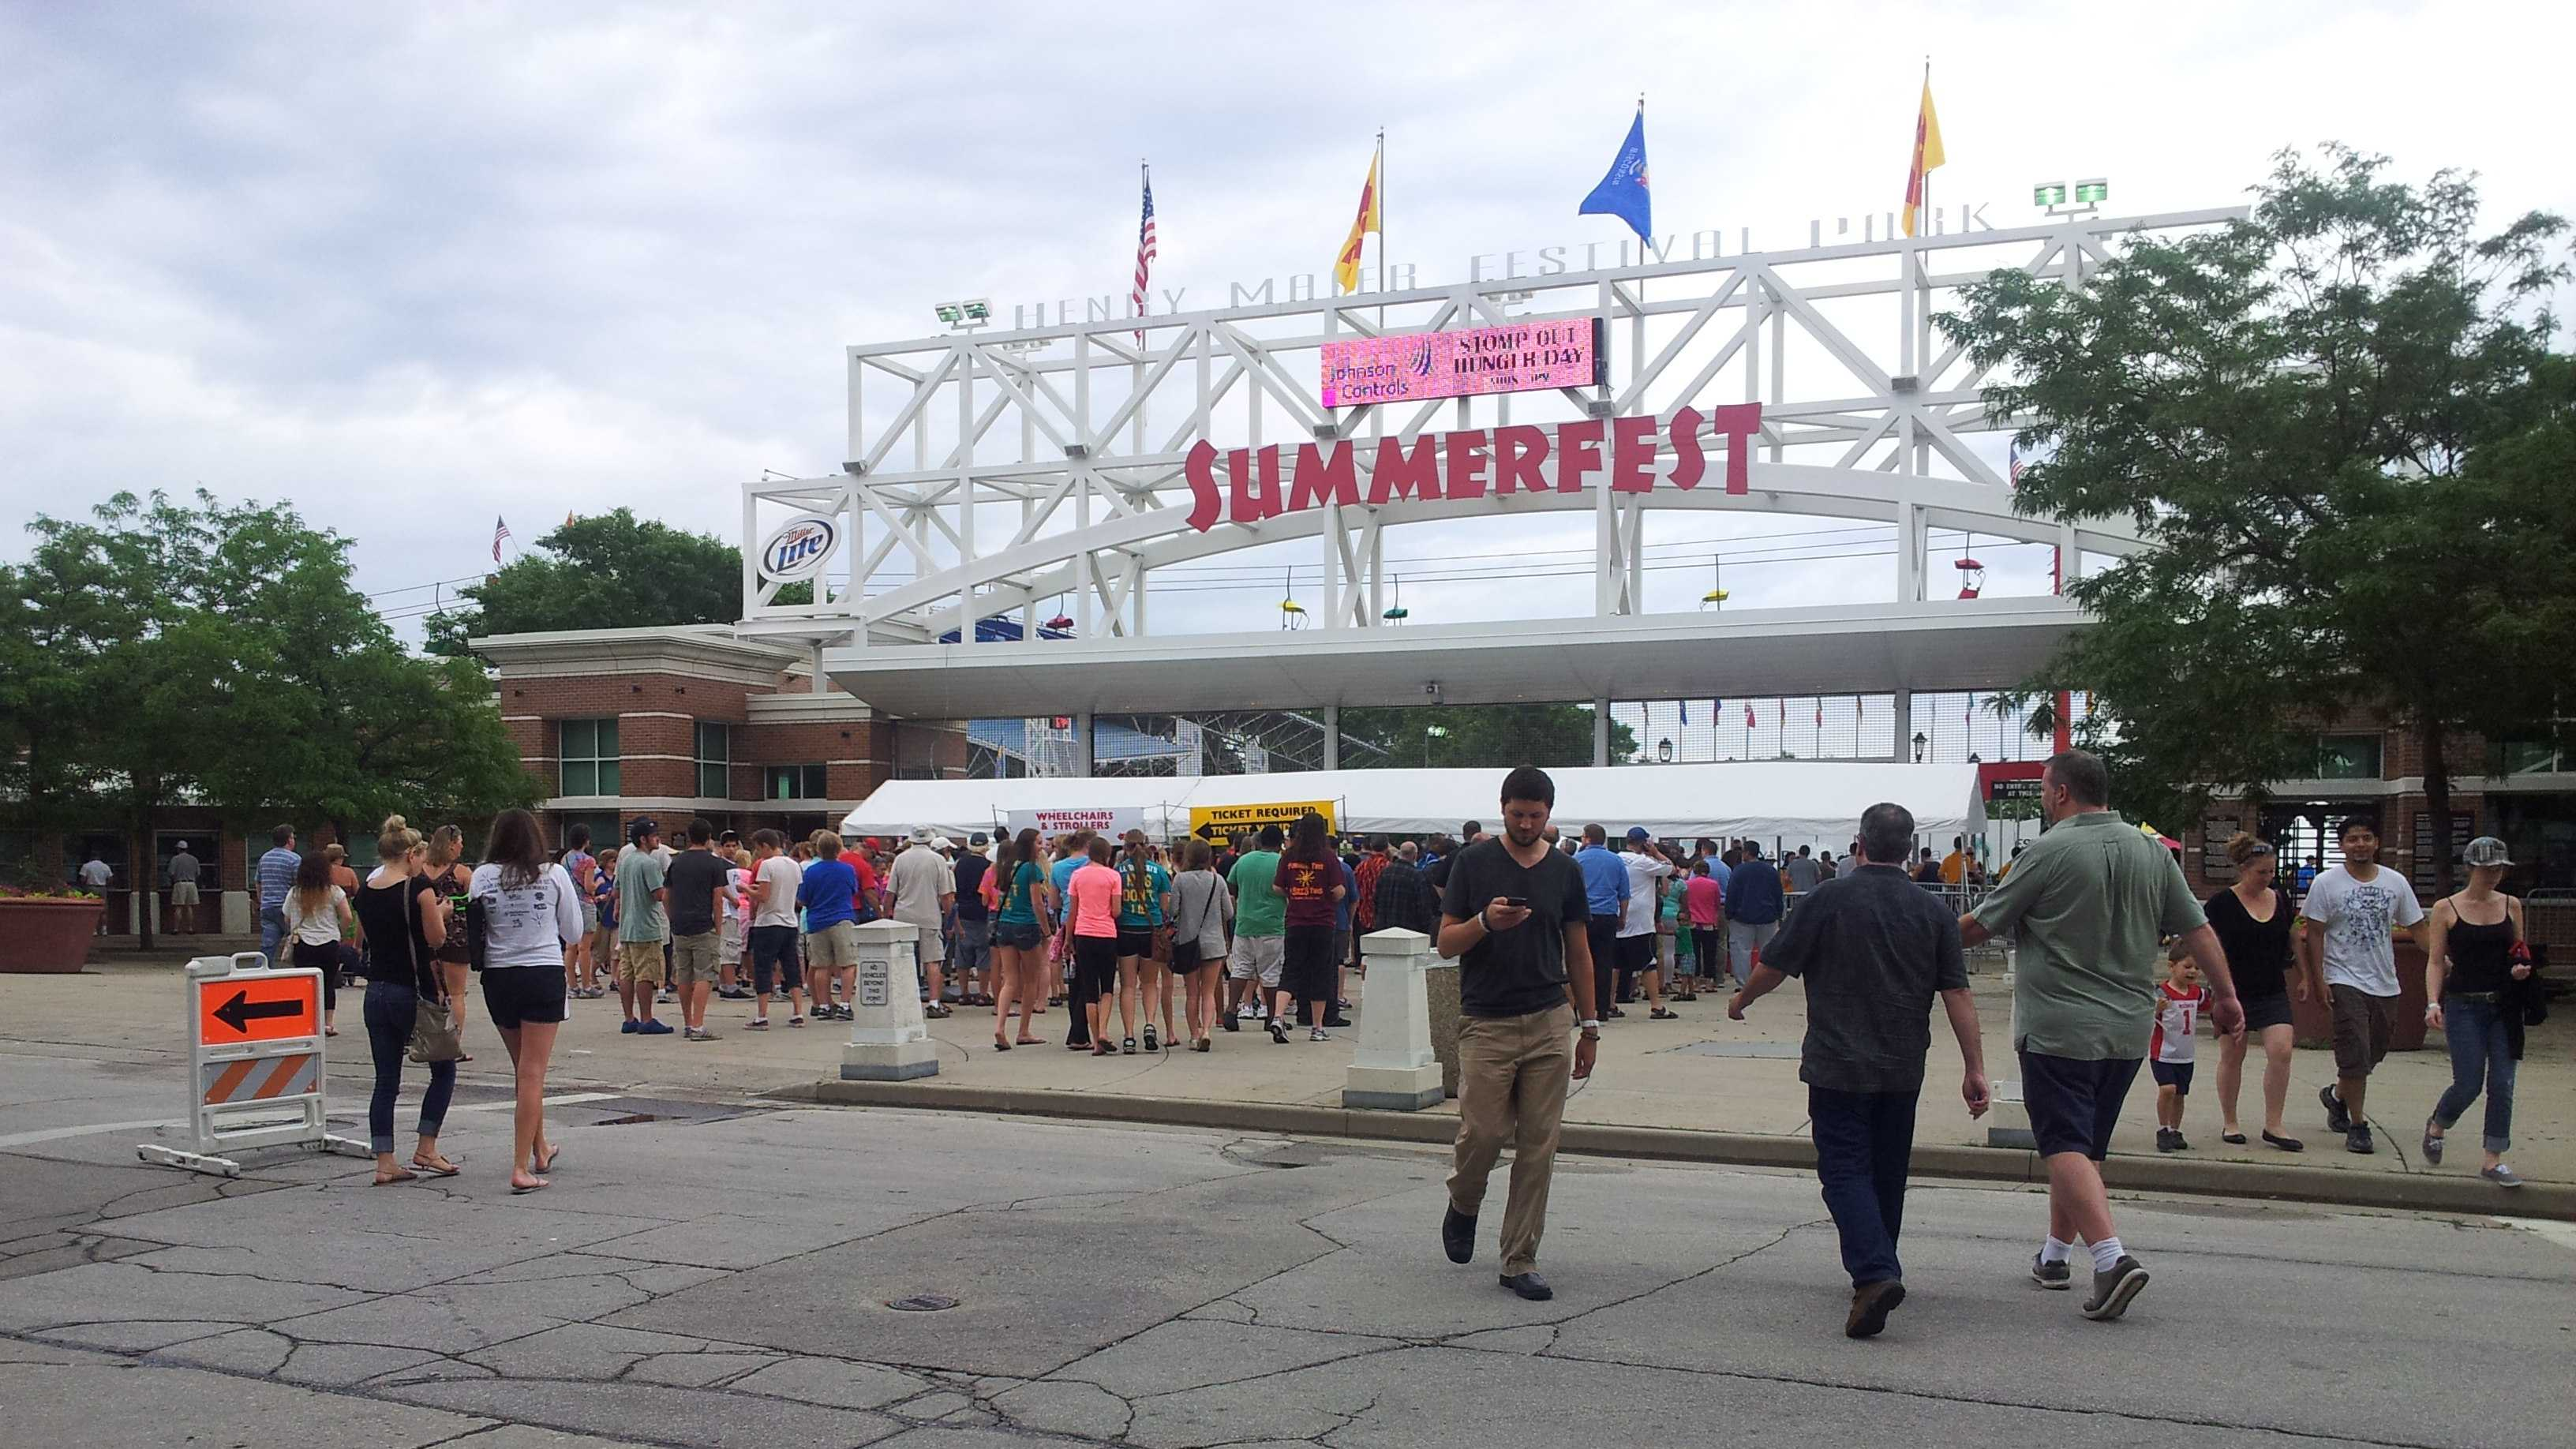 summerfest gates 6-26.jpg